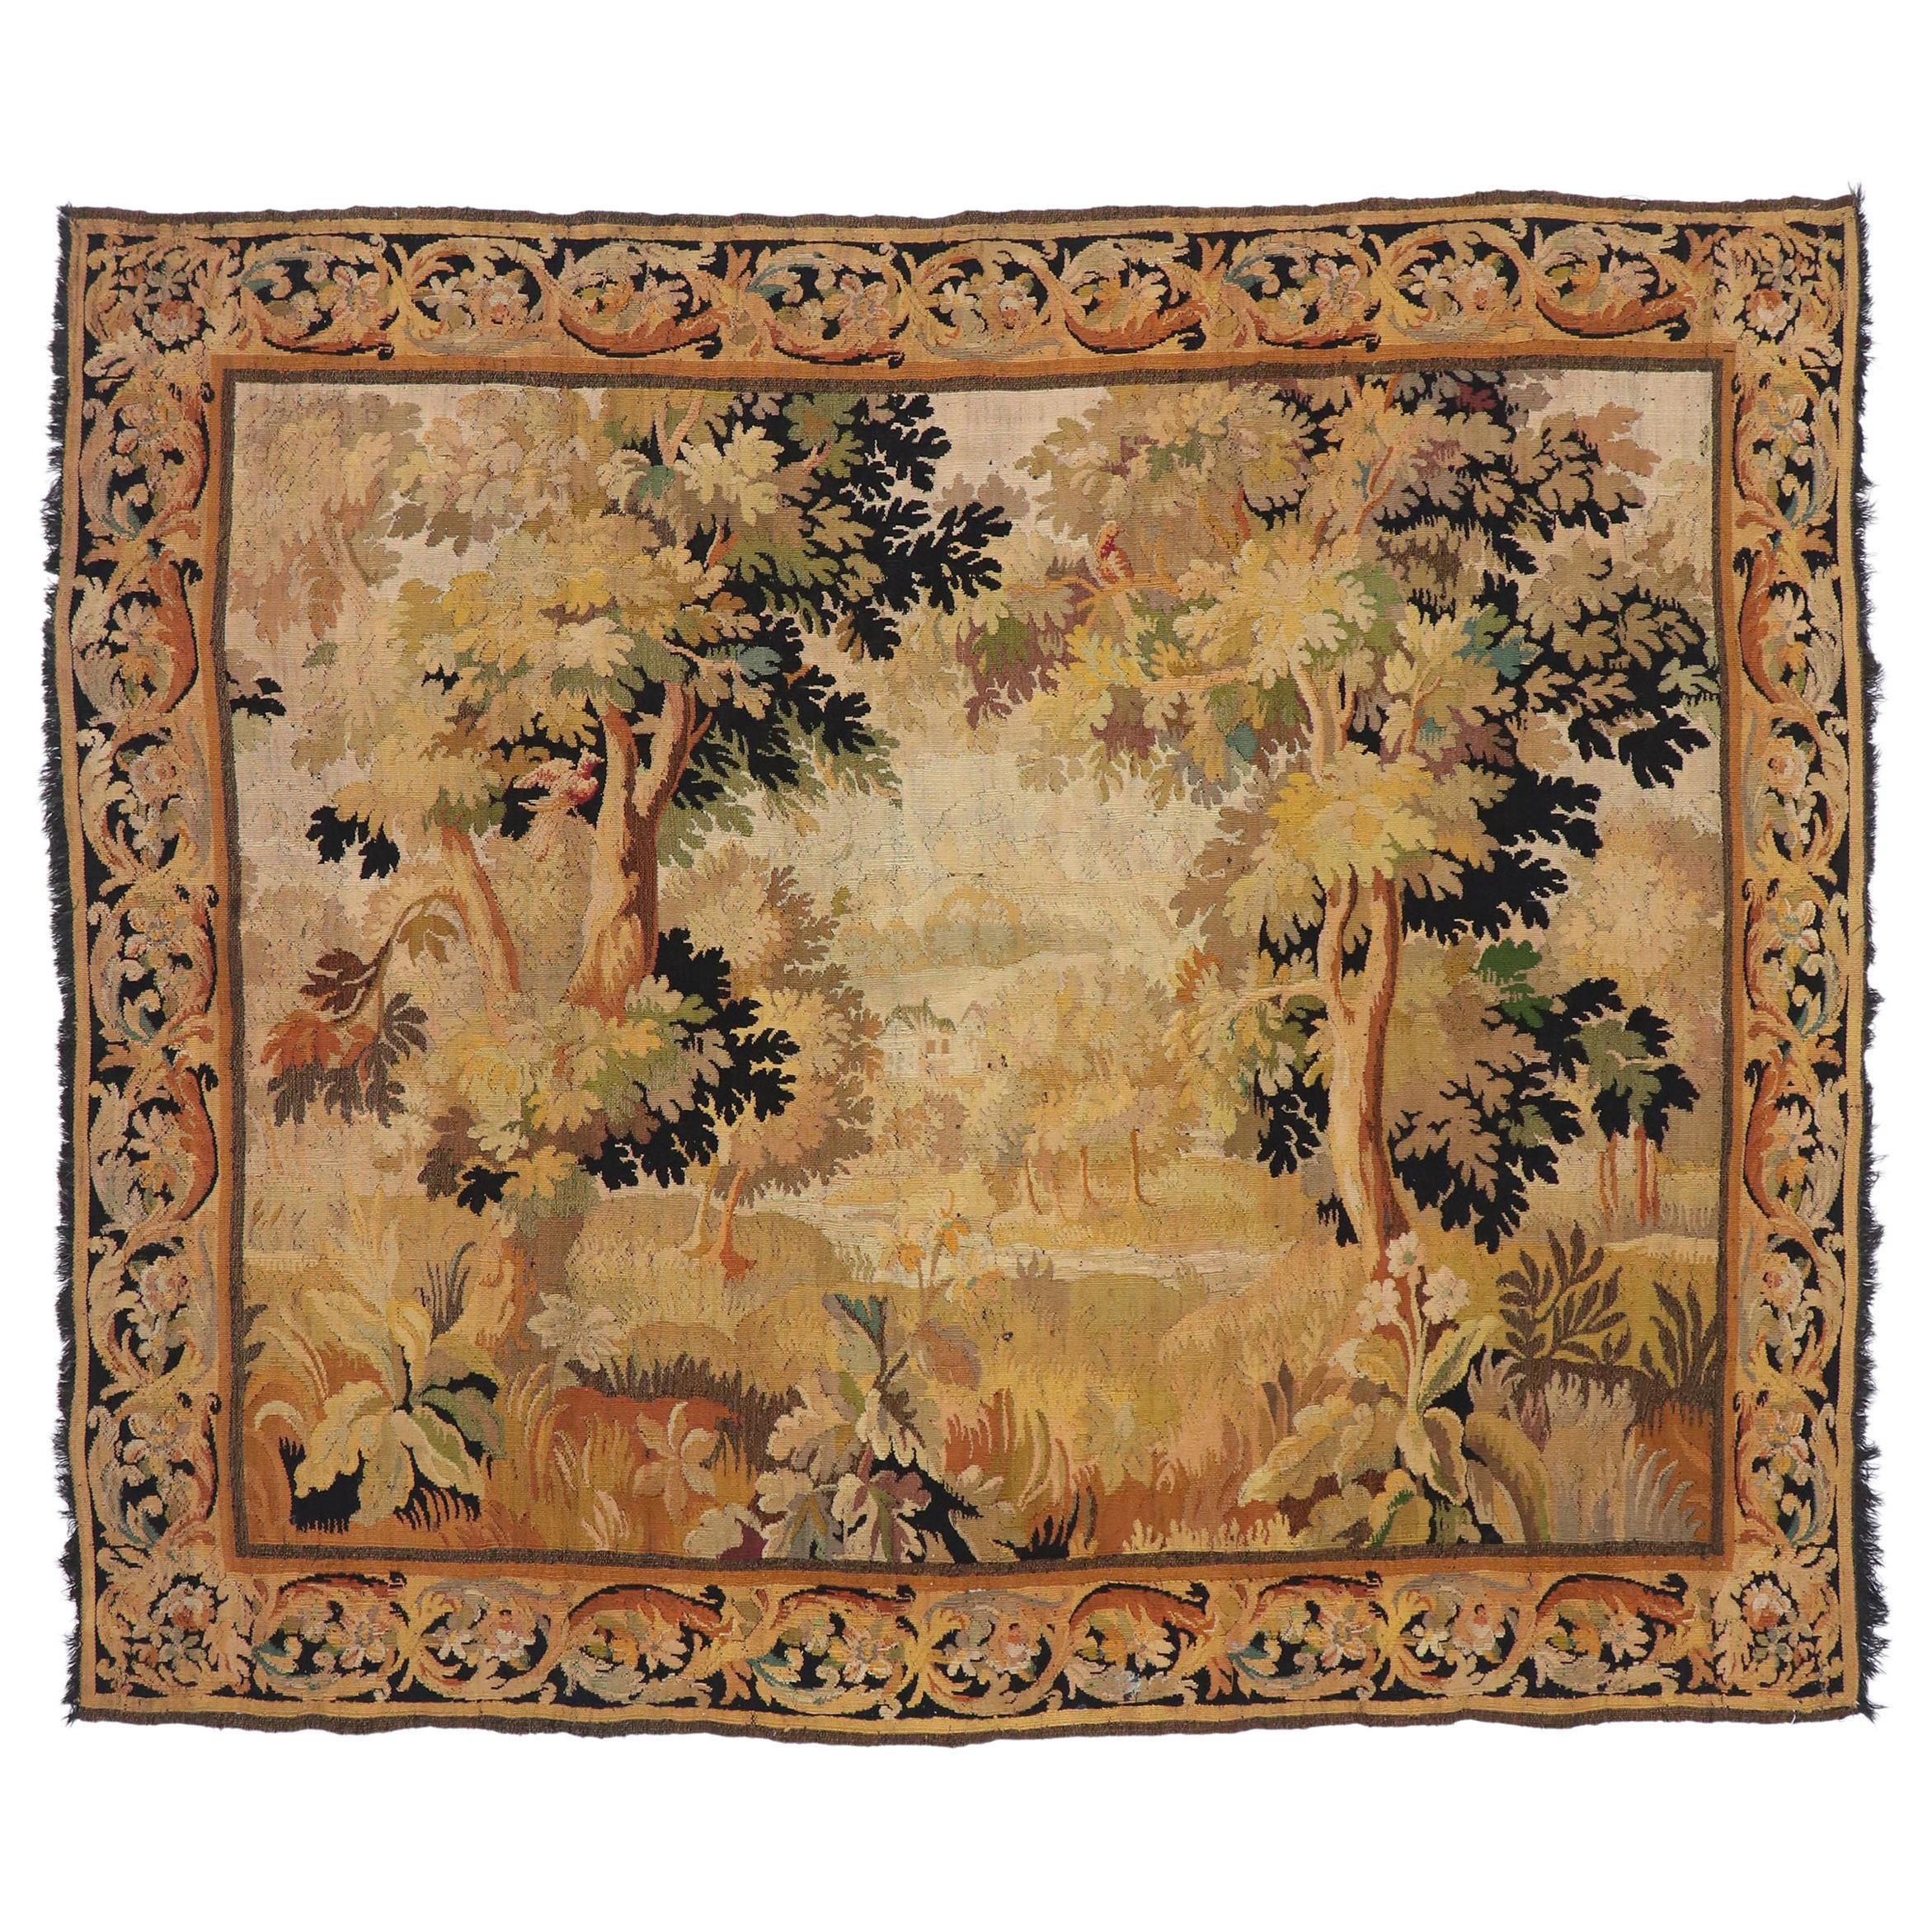 Antique French Aubusson Verdure Tapestry with Traditional Old World Style